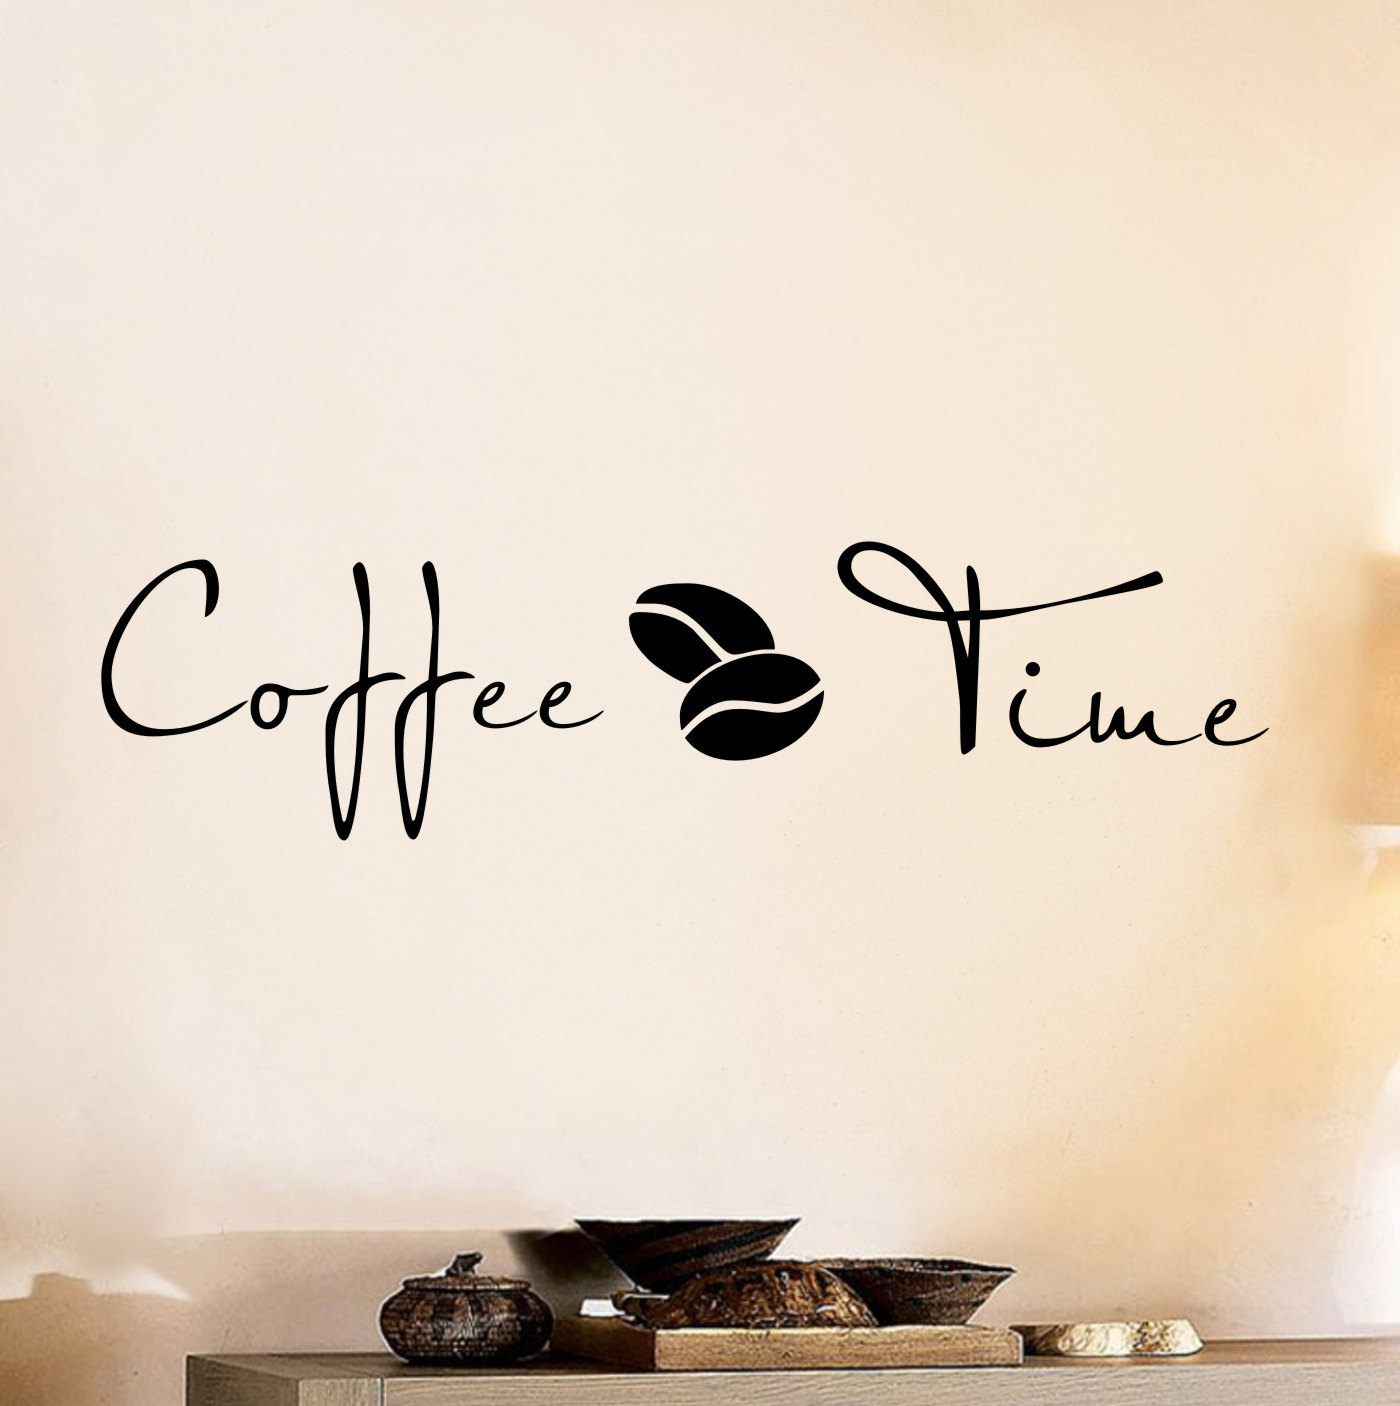 Coffee time wall art decal sticker by decalplaza on etsy for Mural coffee